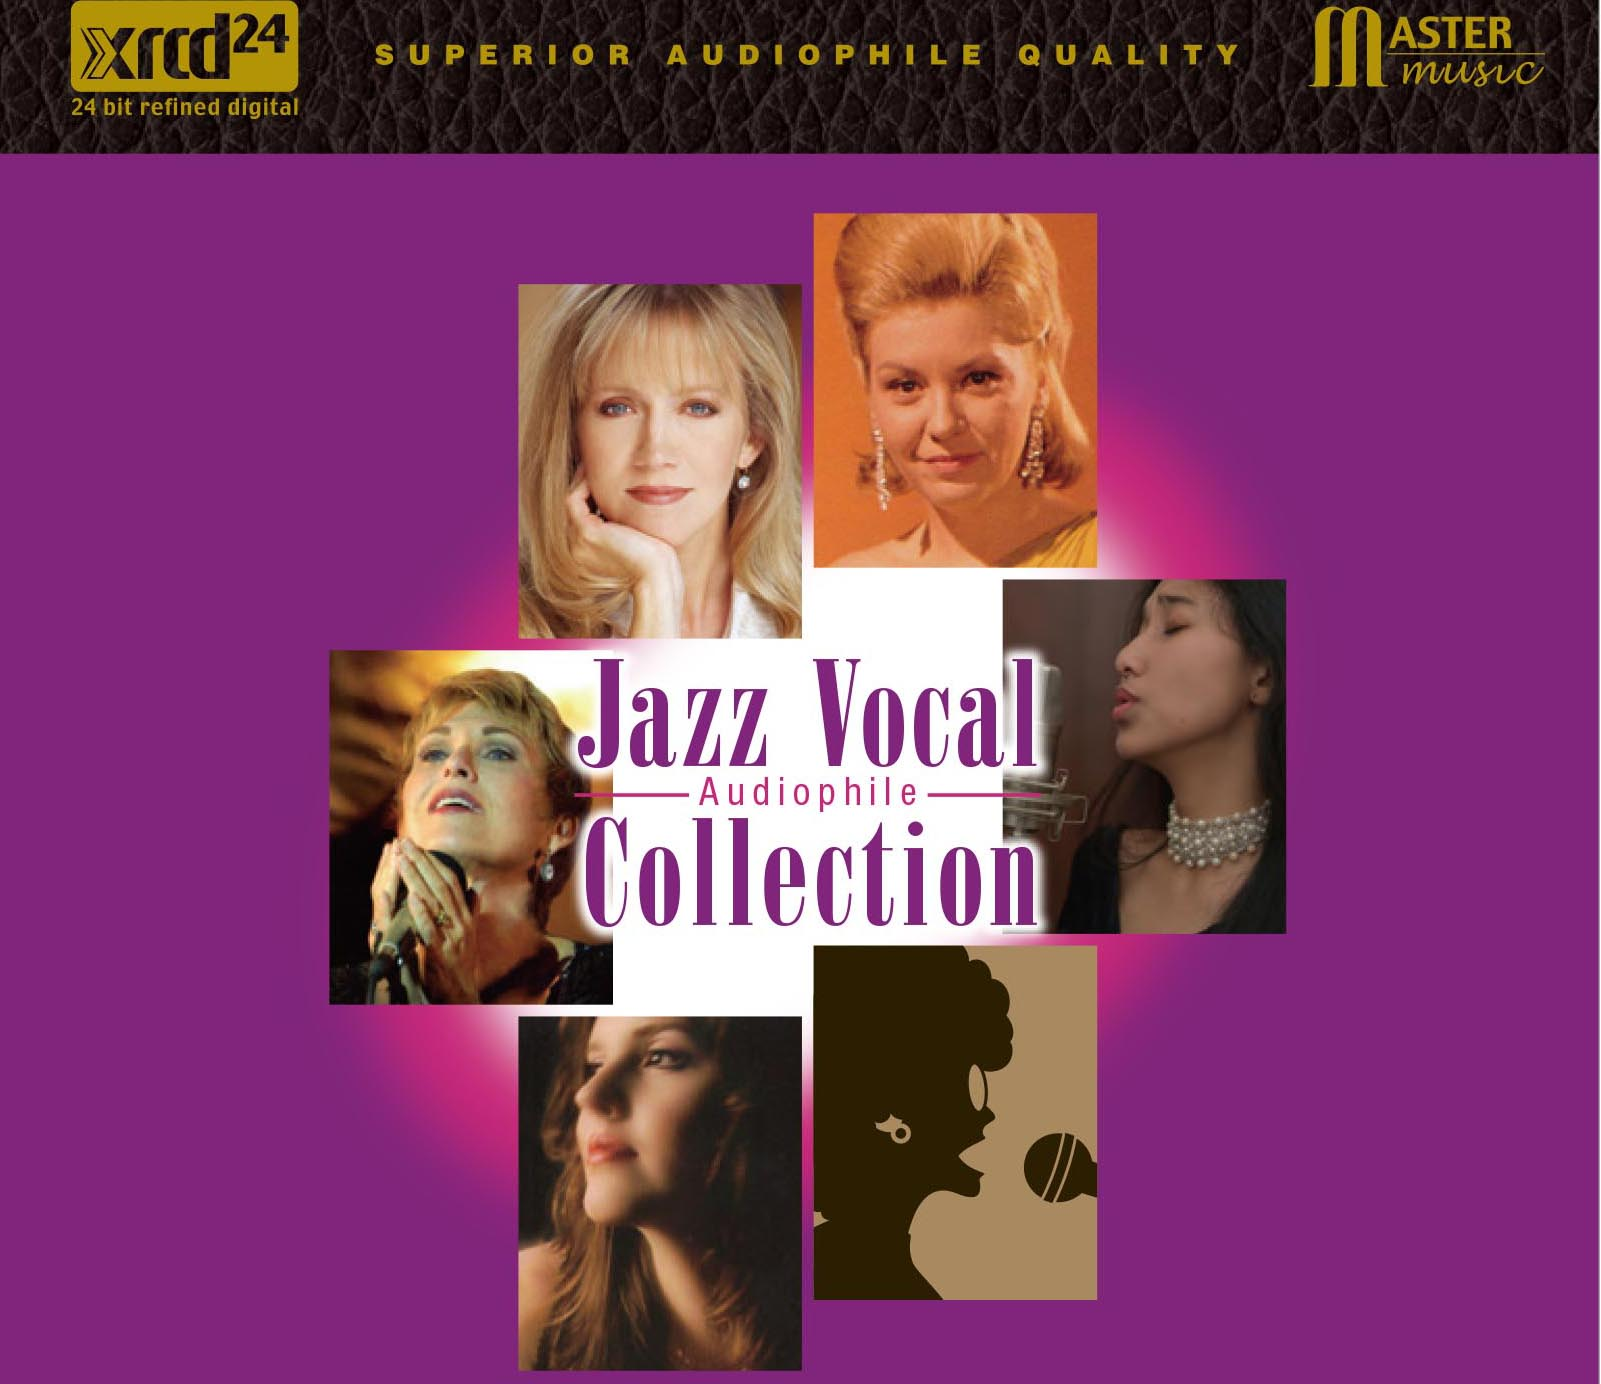 Jazz Vocal Collection/6 artists including Amanda McBroom